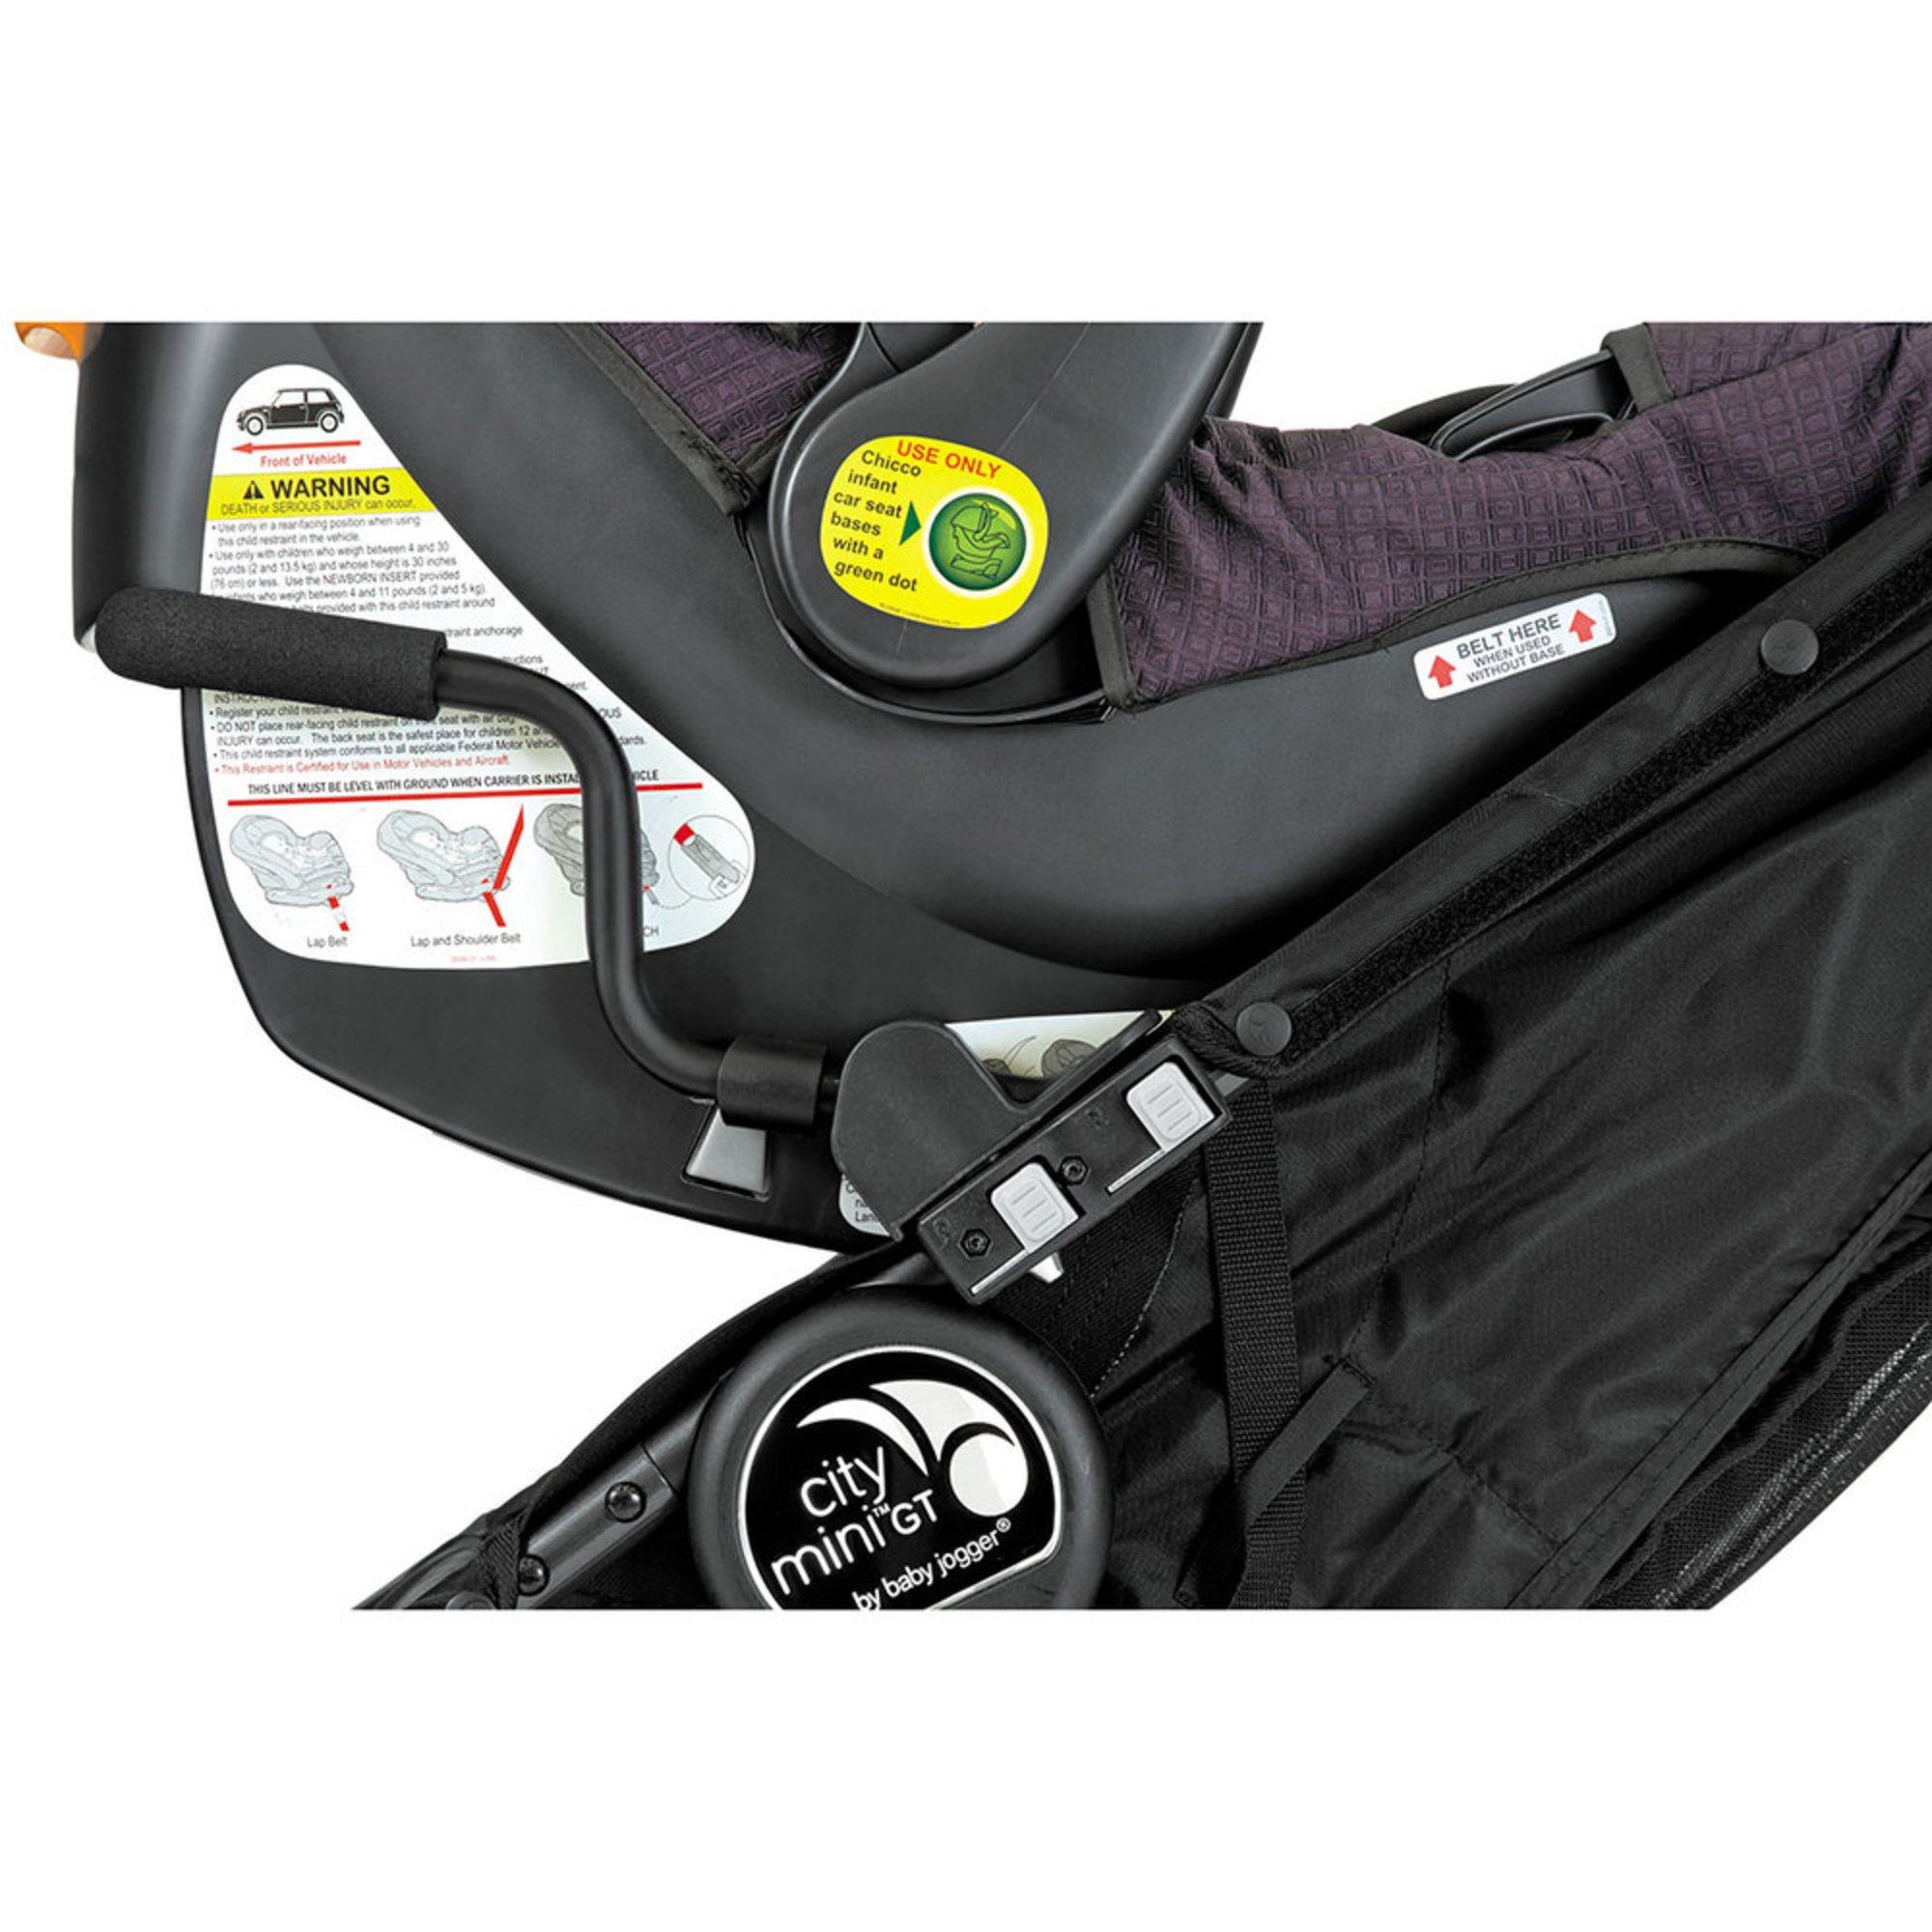 Baby Jogger Car Seat Adapter Single City Mini Stroller